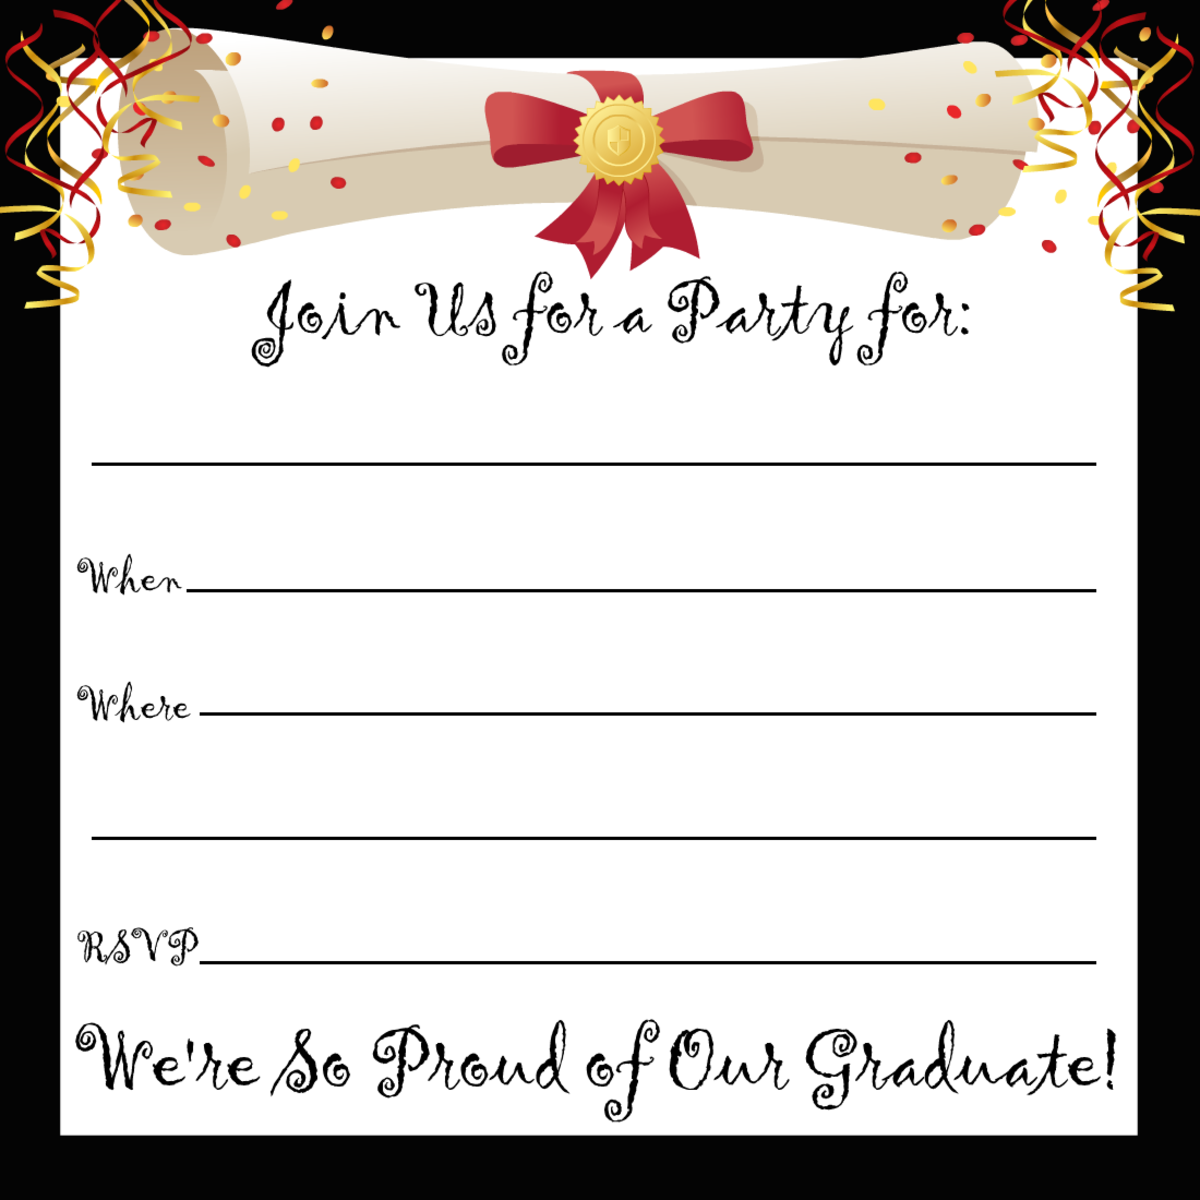 Sample from the Free Graduation Party Invitations hub